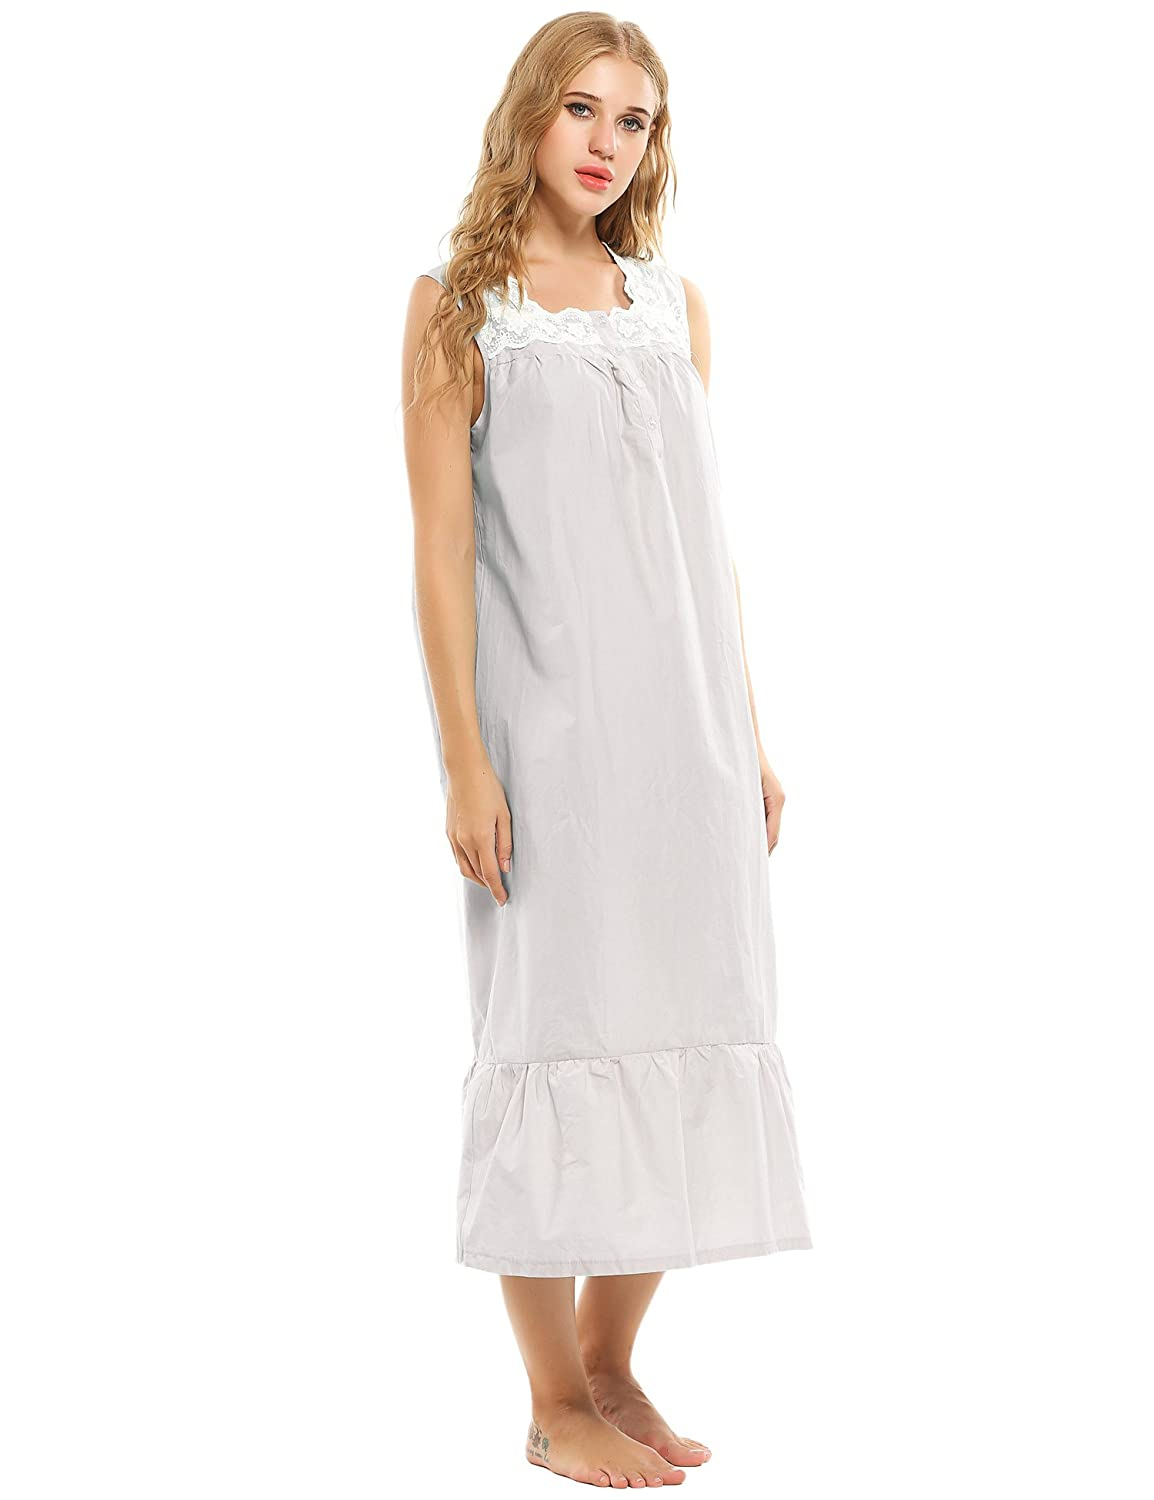 85195f11a0 Cooshional Ladies Nightgown Lace Cotton Nightdress Embroider Nightie  Sleepwear with Buttons Victorian Style  Amazon.co.uk  Clothing